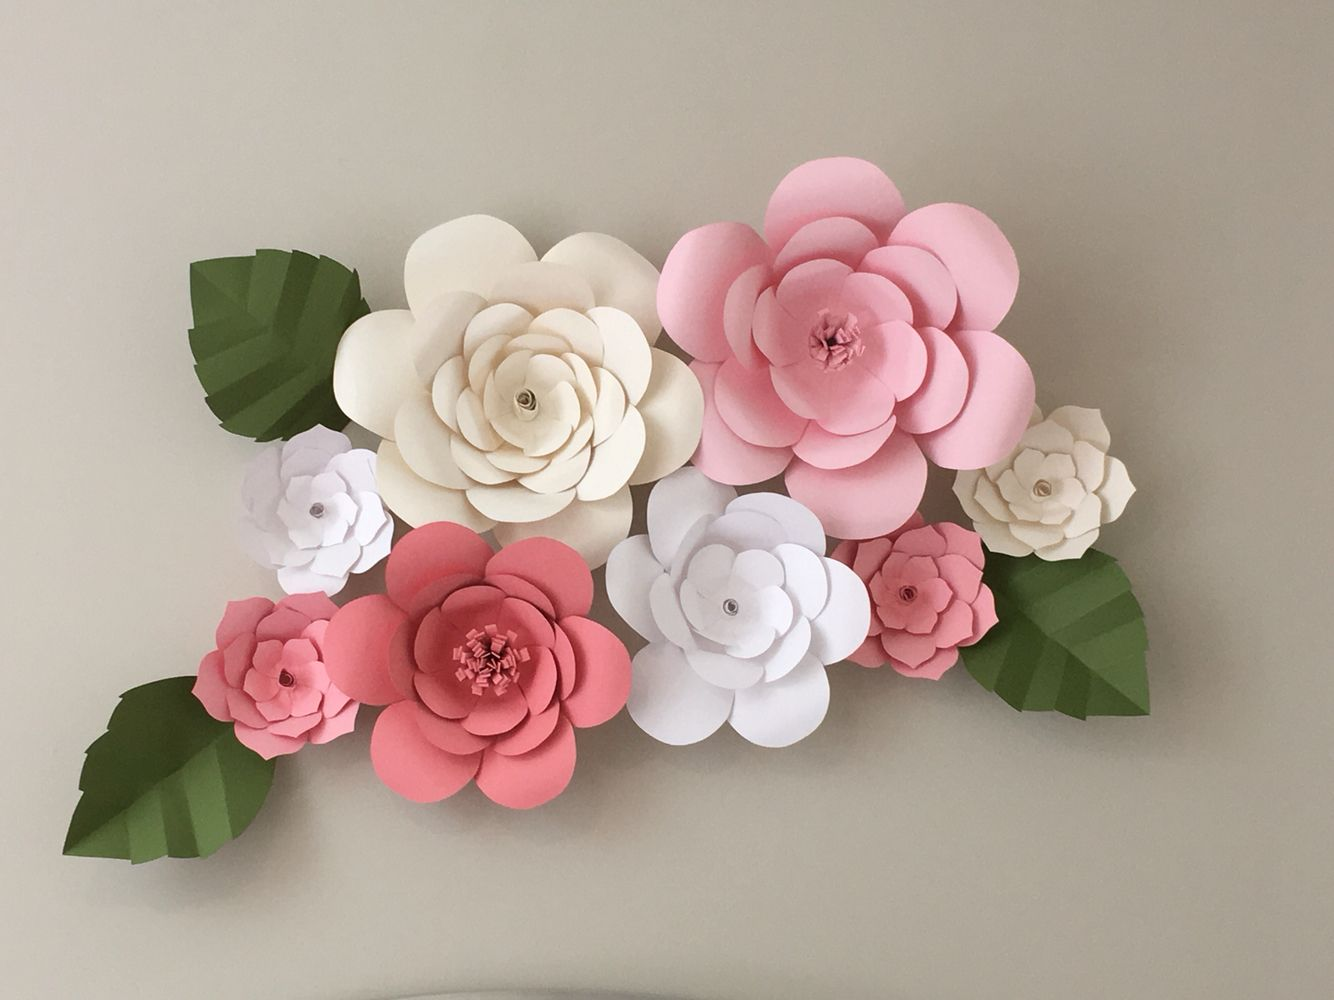 Handmade Paper Flowers For Pink And White Nursery Wall Art